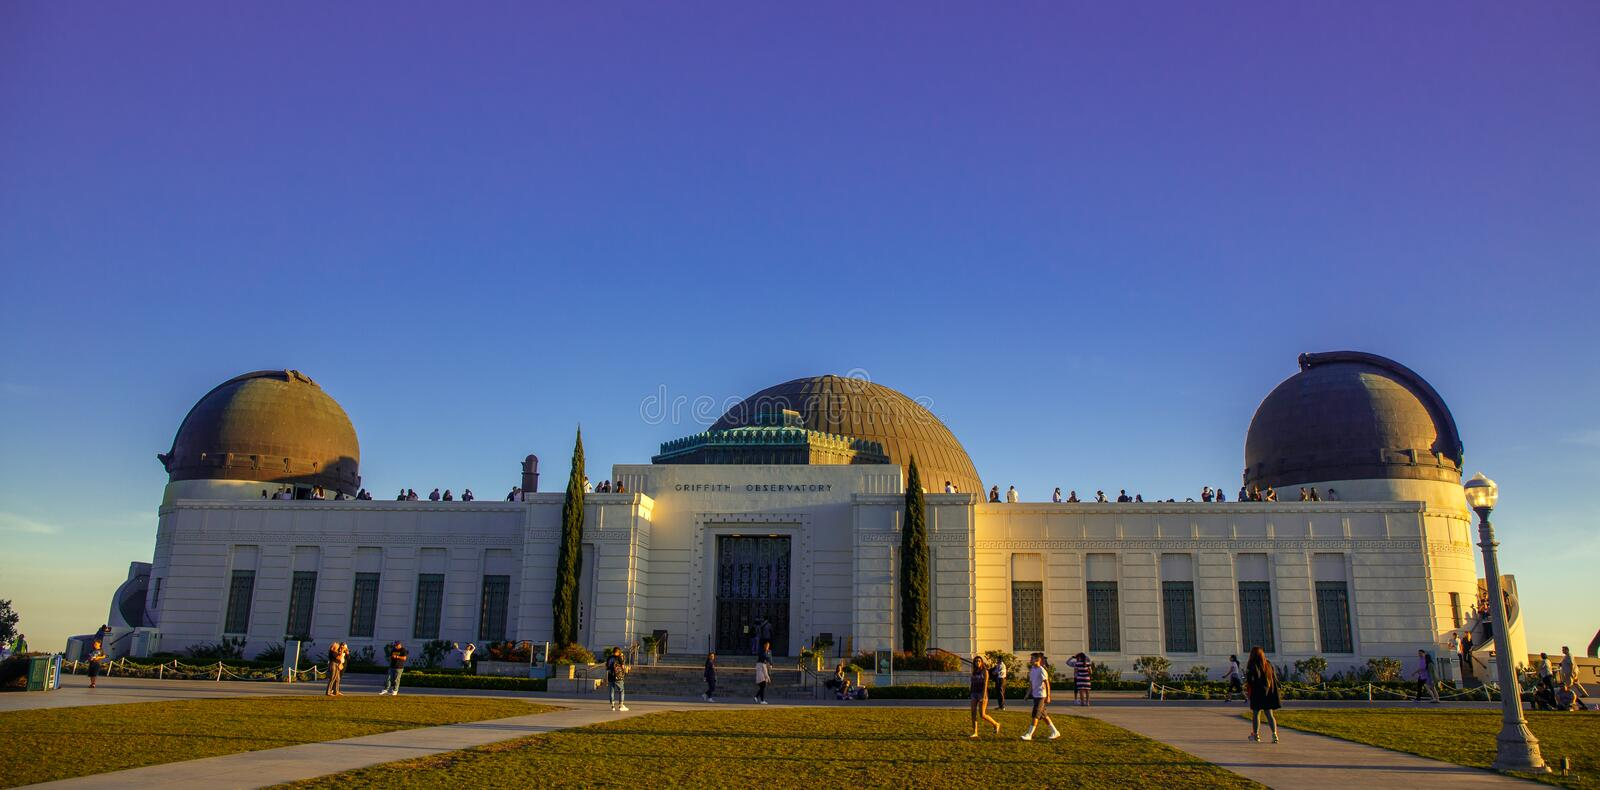 Observatoire de Griffith Park photo stock